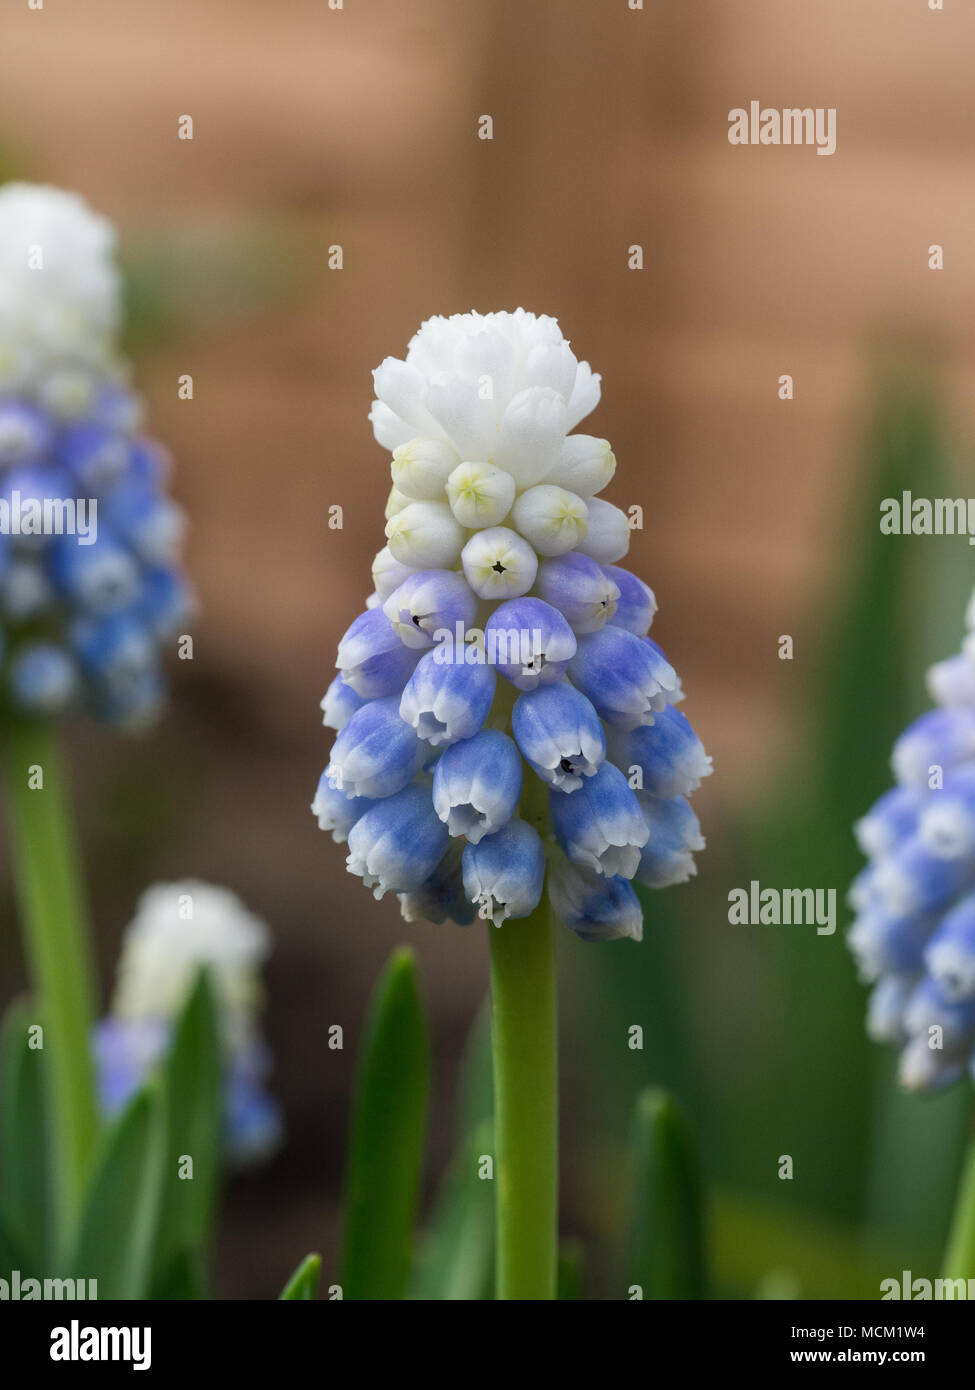 Close up of a single flower spike of the bicoloured Muscari Mountain Stock Photo